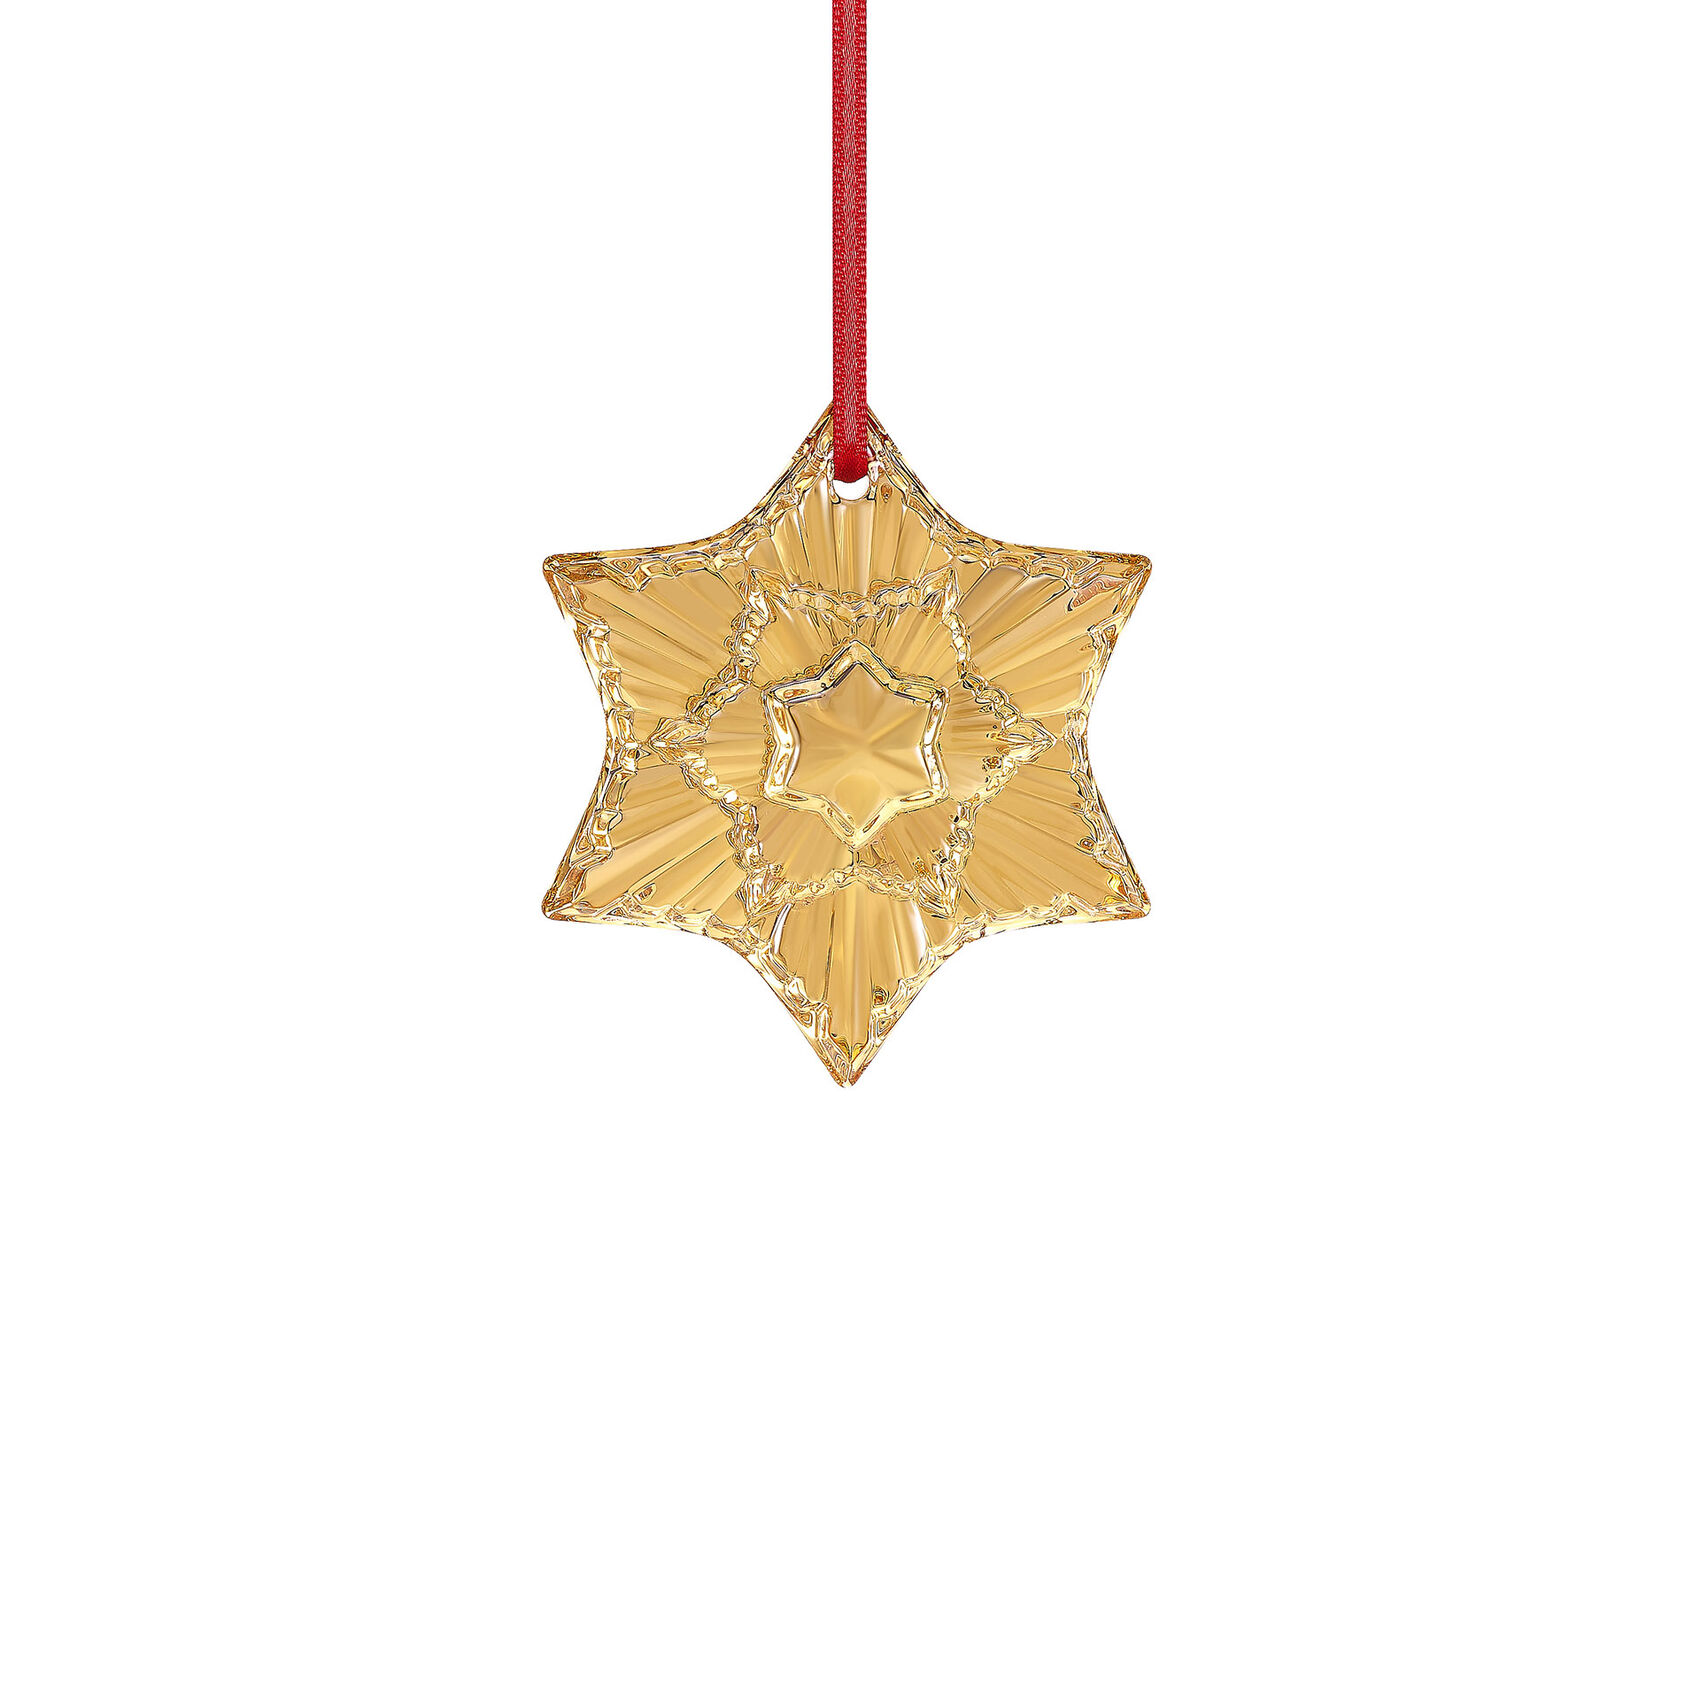 Baccarat 2020 Christmas Ornament ANNUAL ORNAMENT 2020   Baccarat